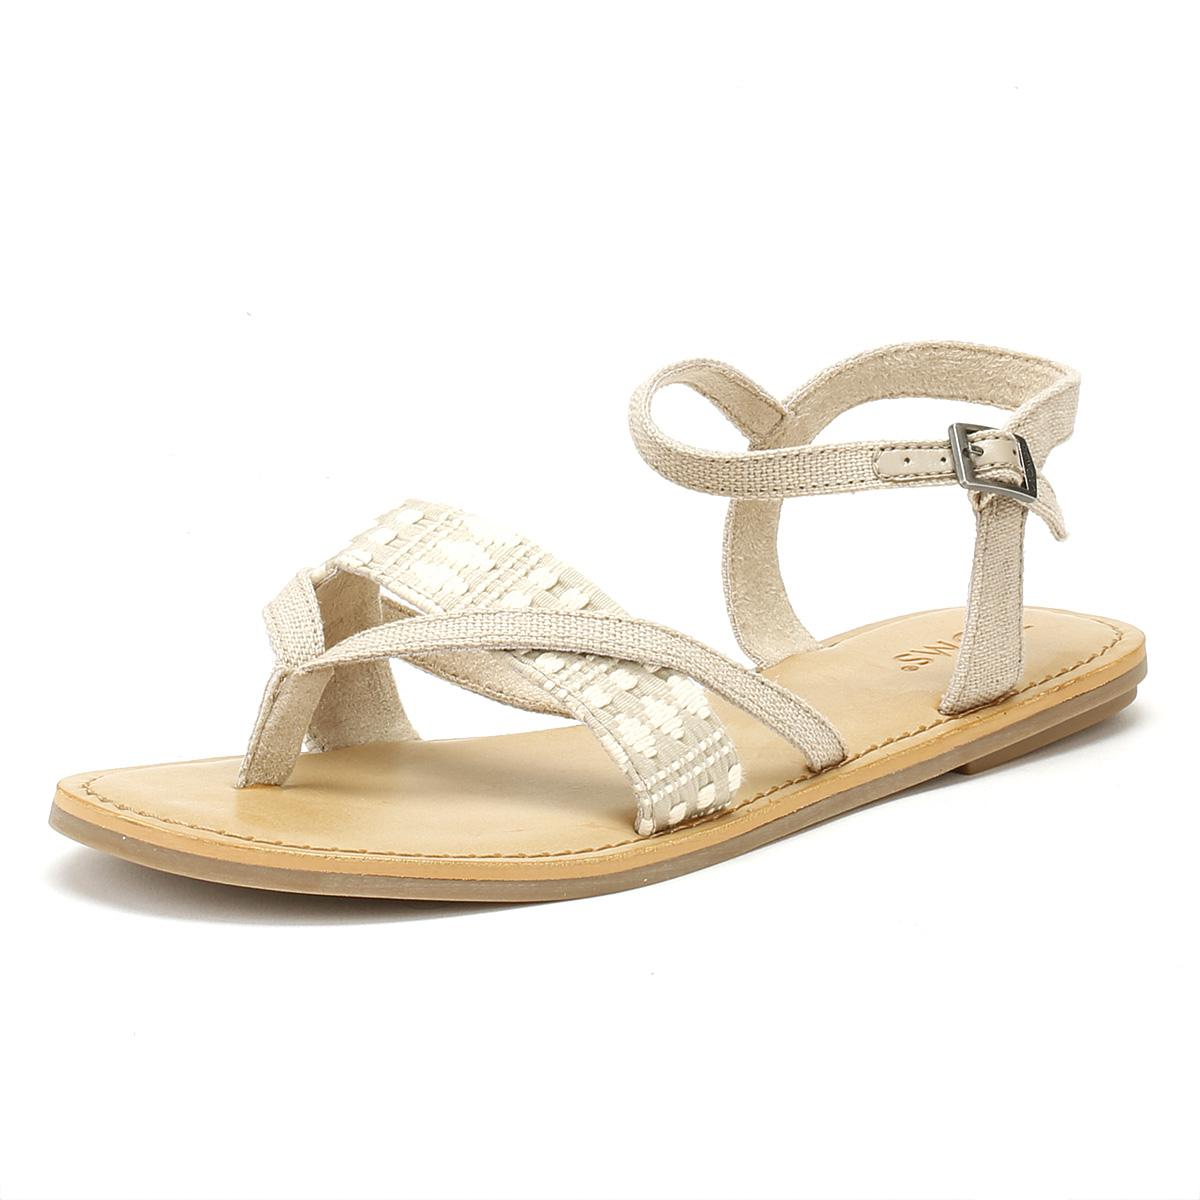 fdff86fdc5d TOMS - Multicolor Womens Oxford Tan Heritage Lexie Sandals - Lyst. View  fullscreen